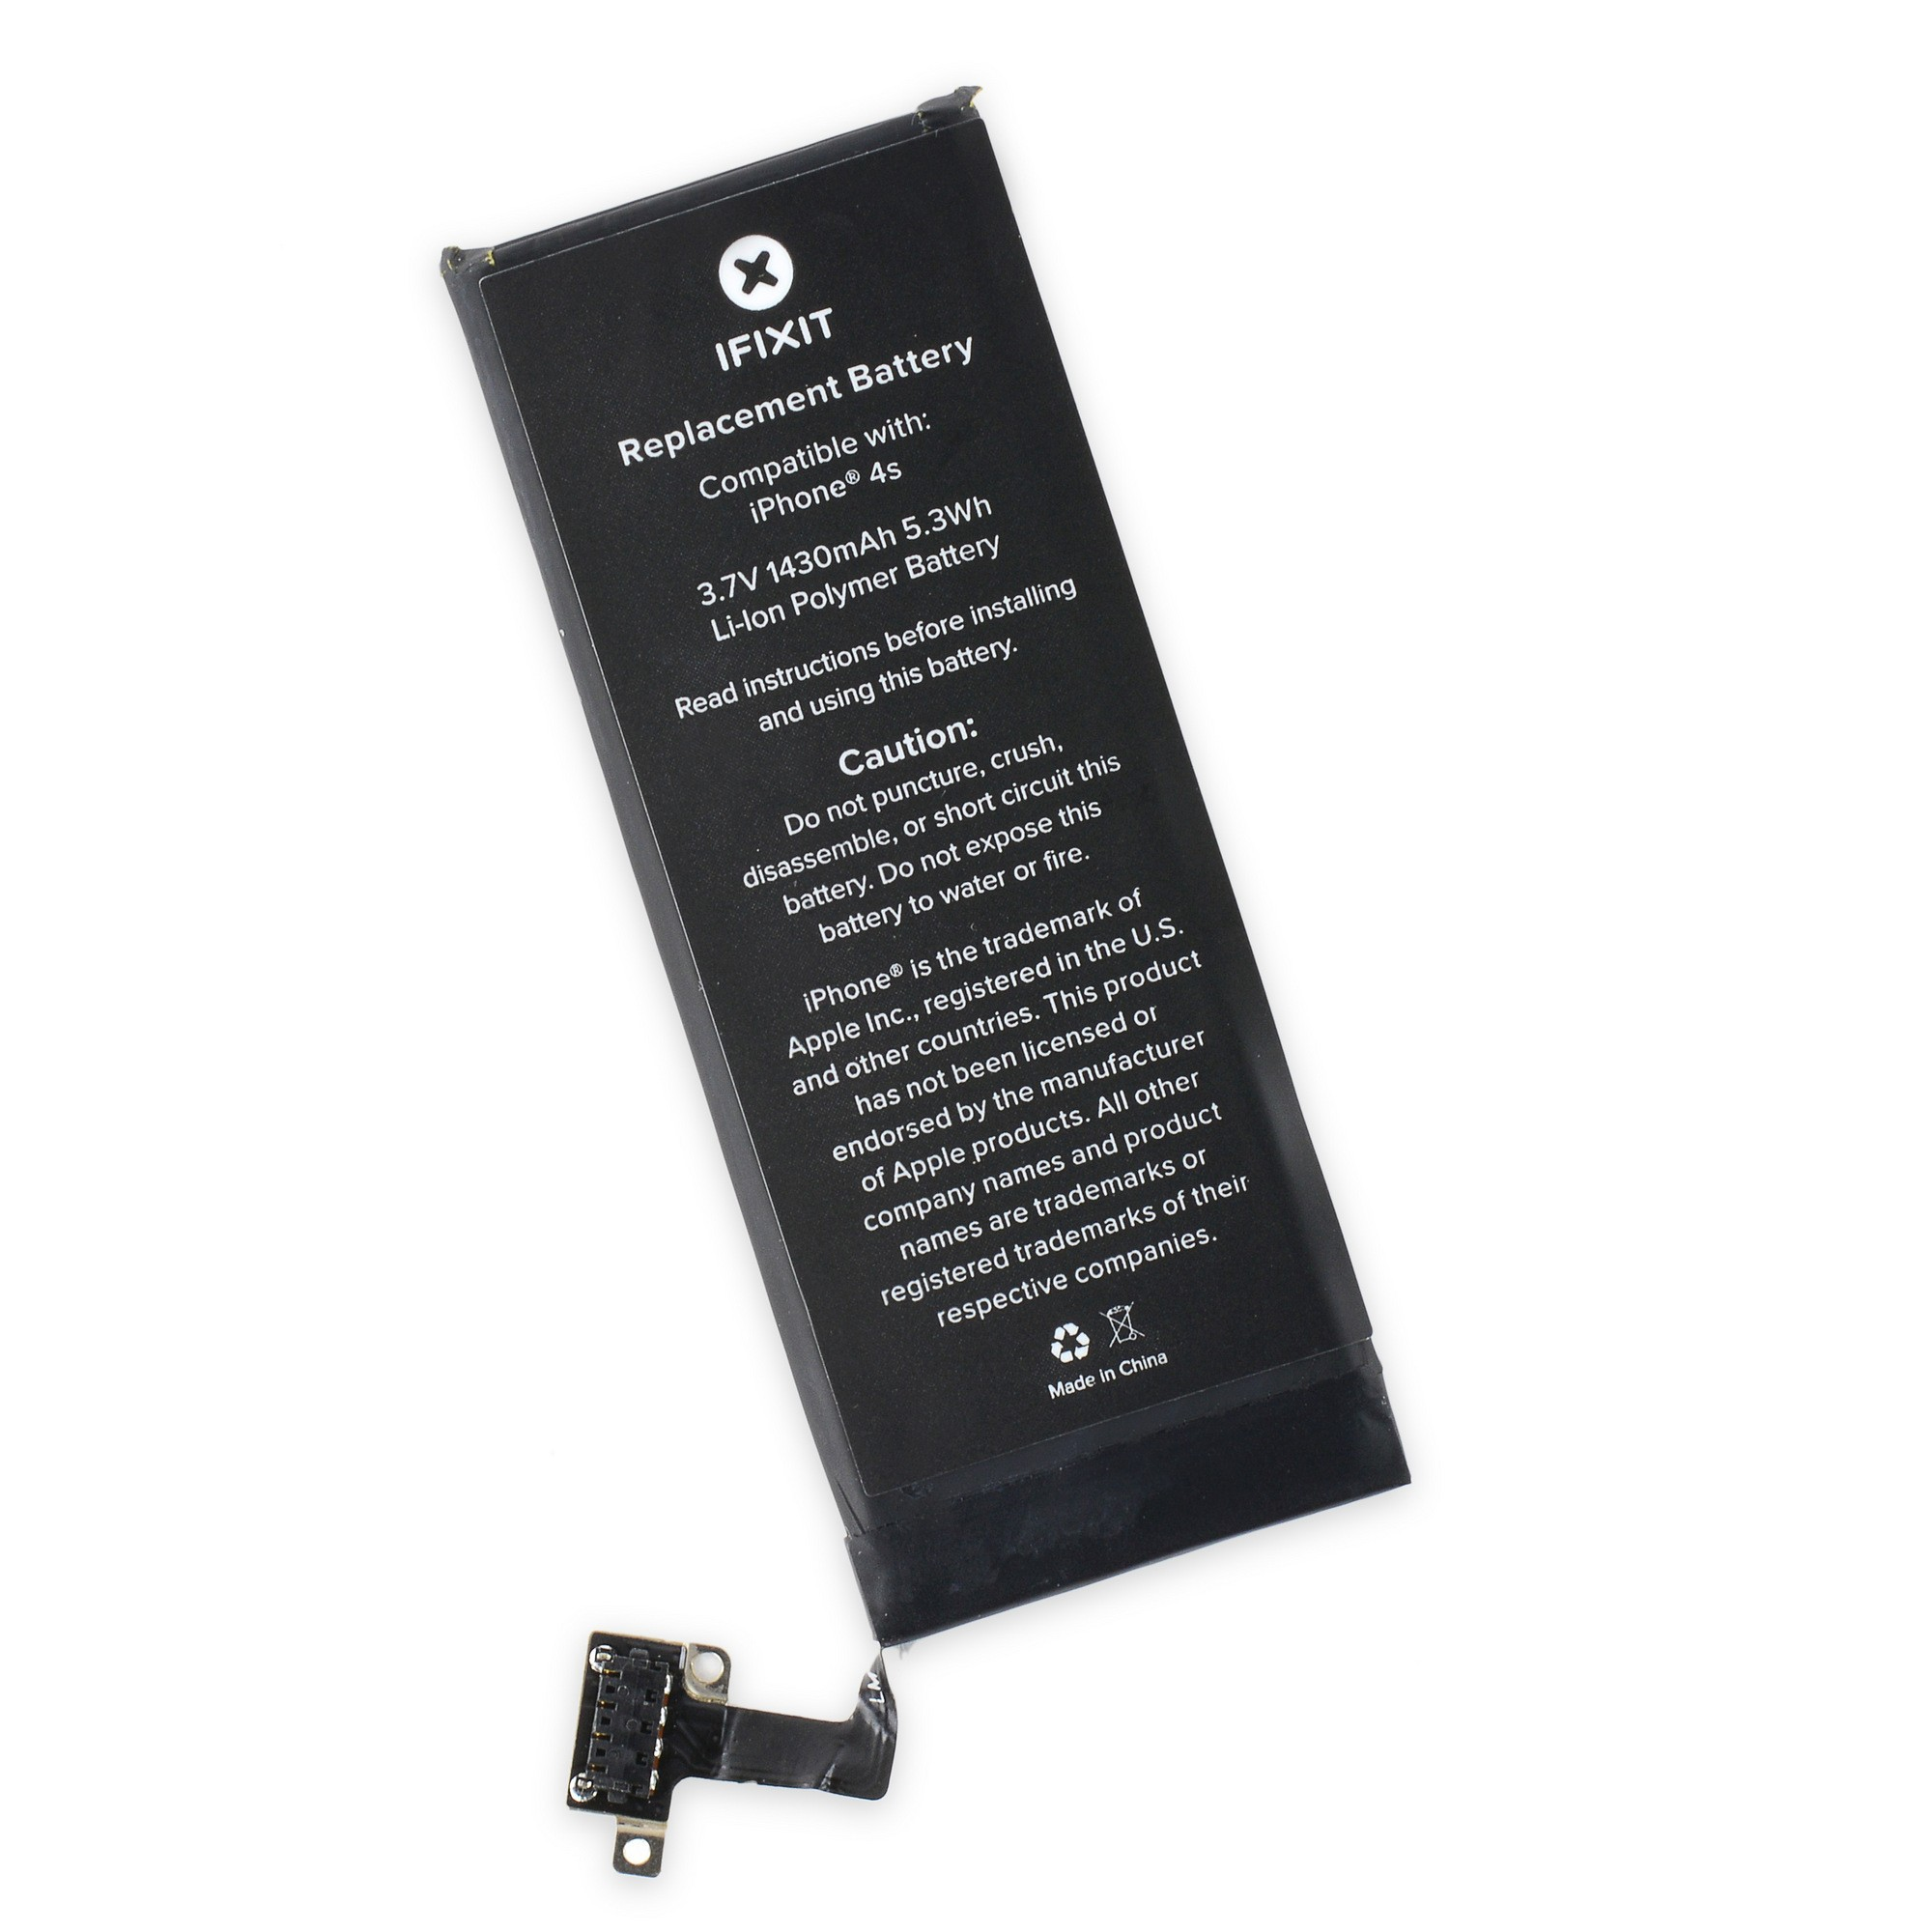 iPhone 4S Battery Replacement From iFixit - With Tools, IF115-005-4